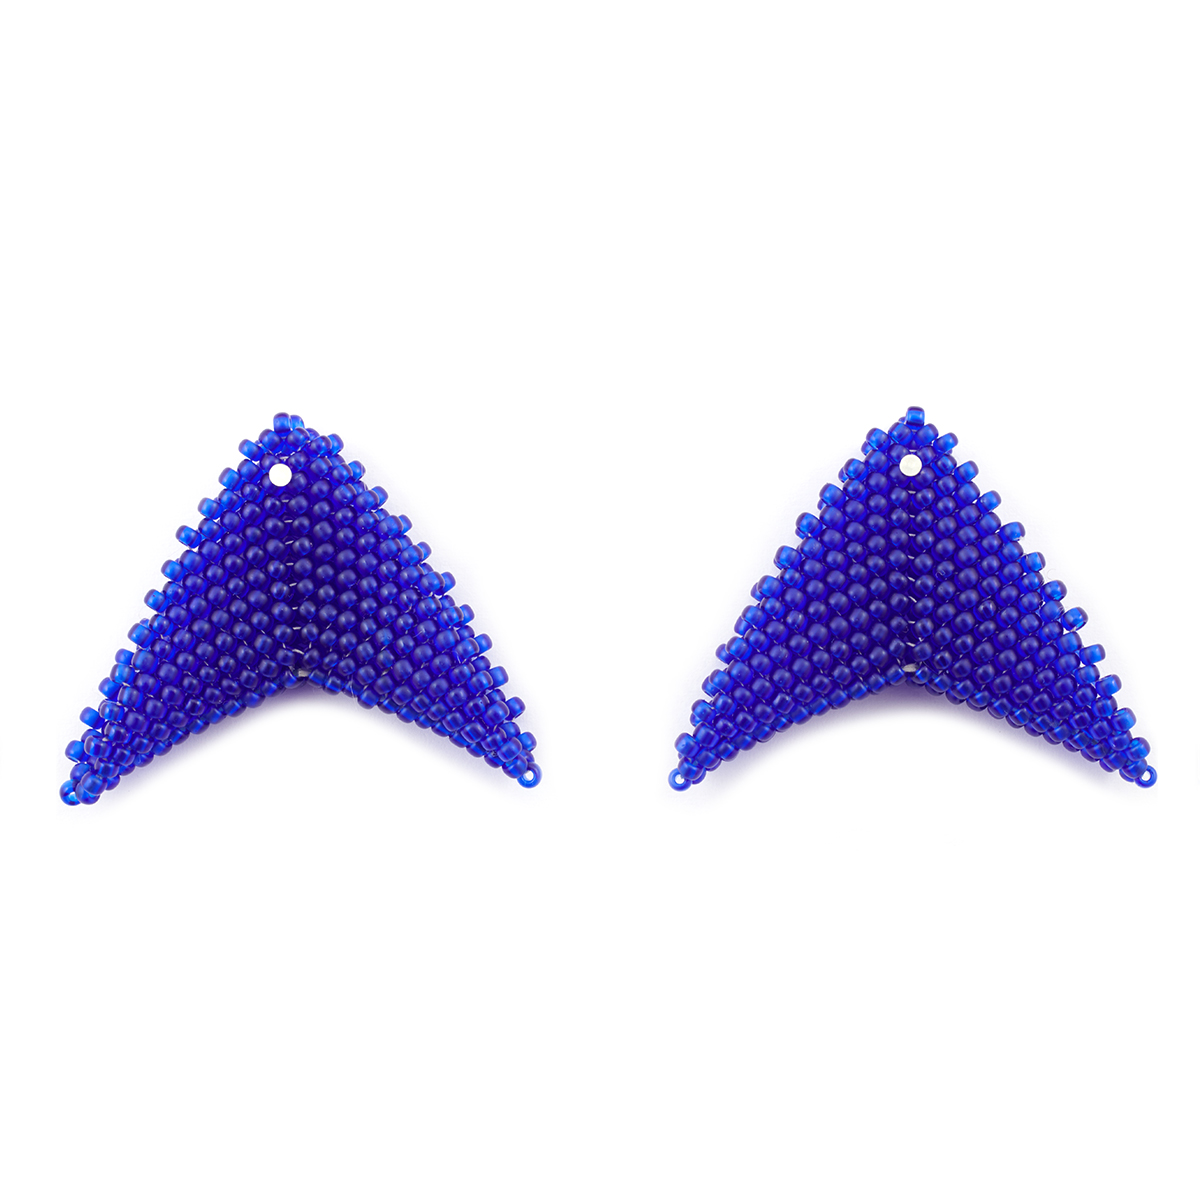 Indigo stud earrings by Beloved Beadwork